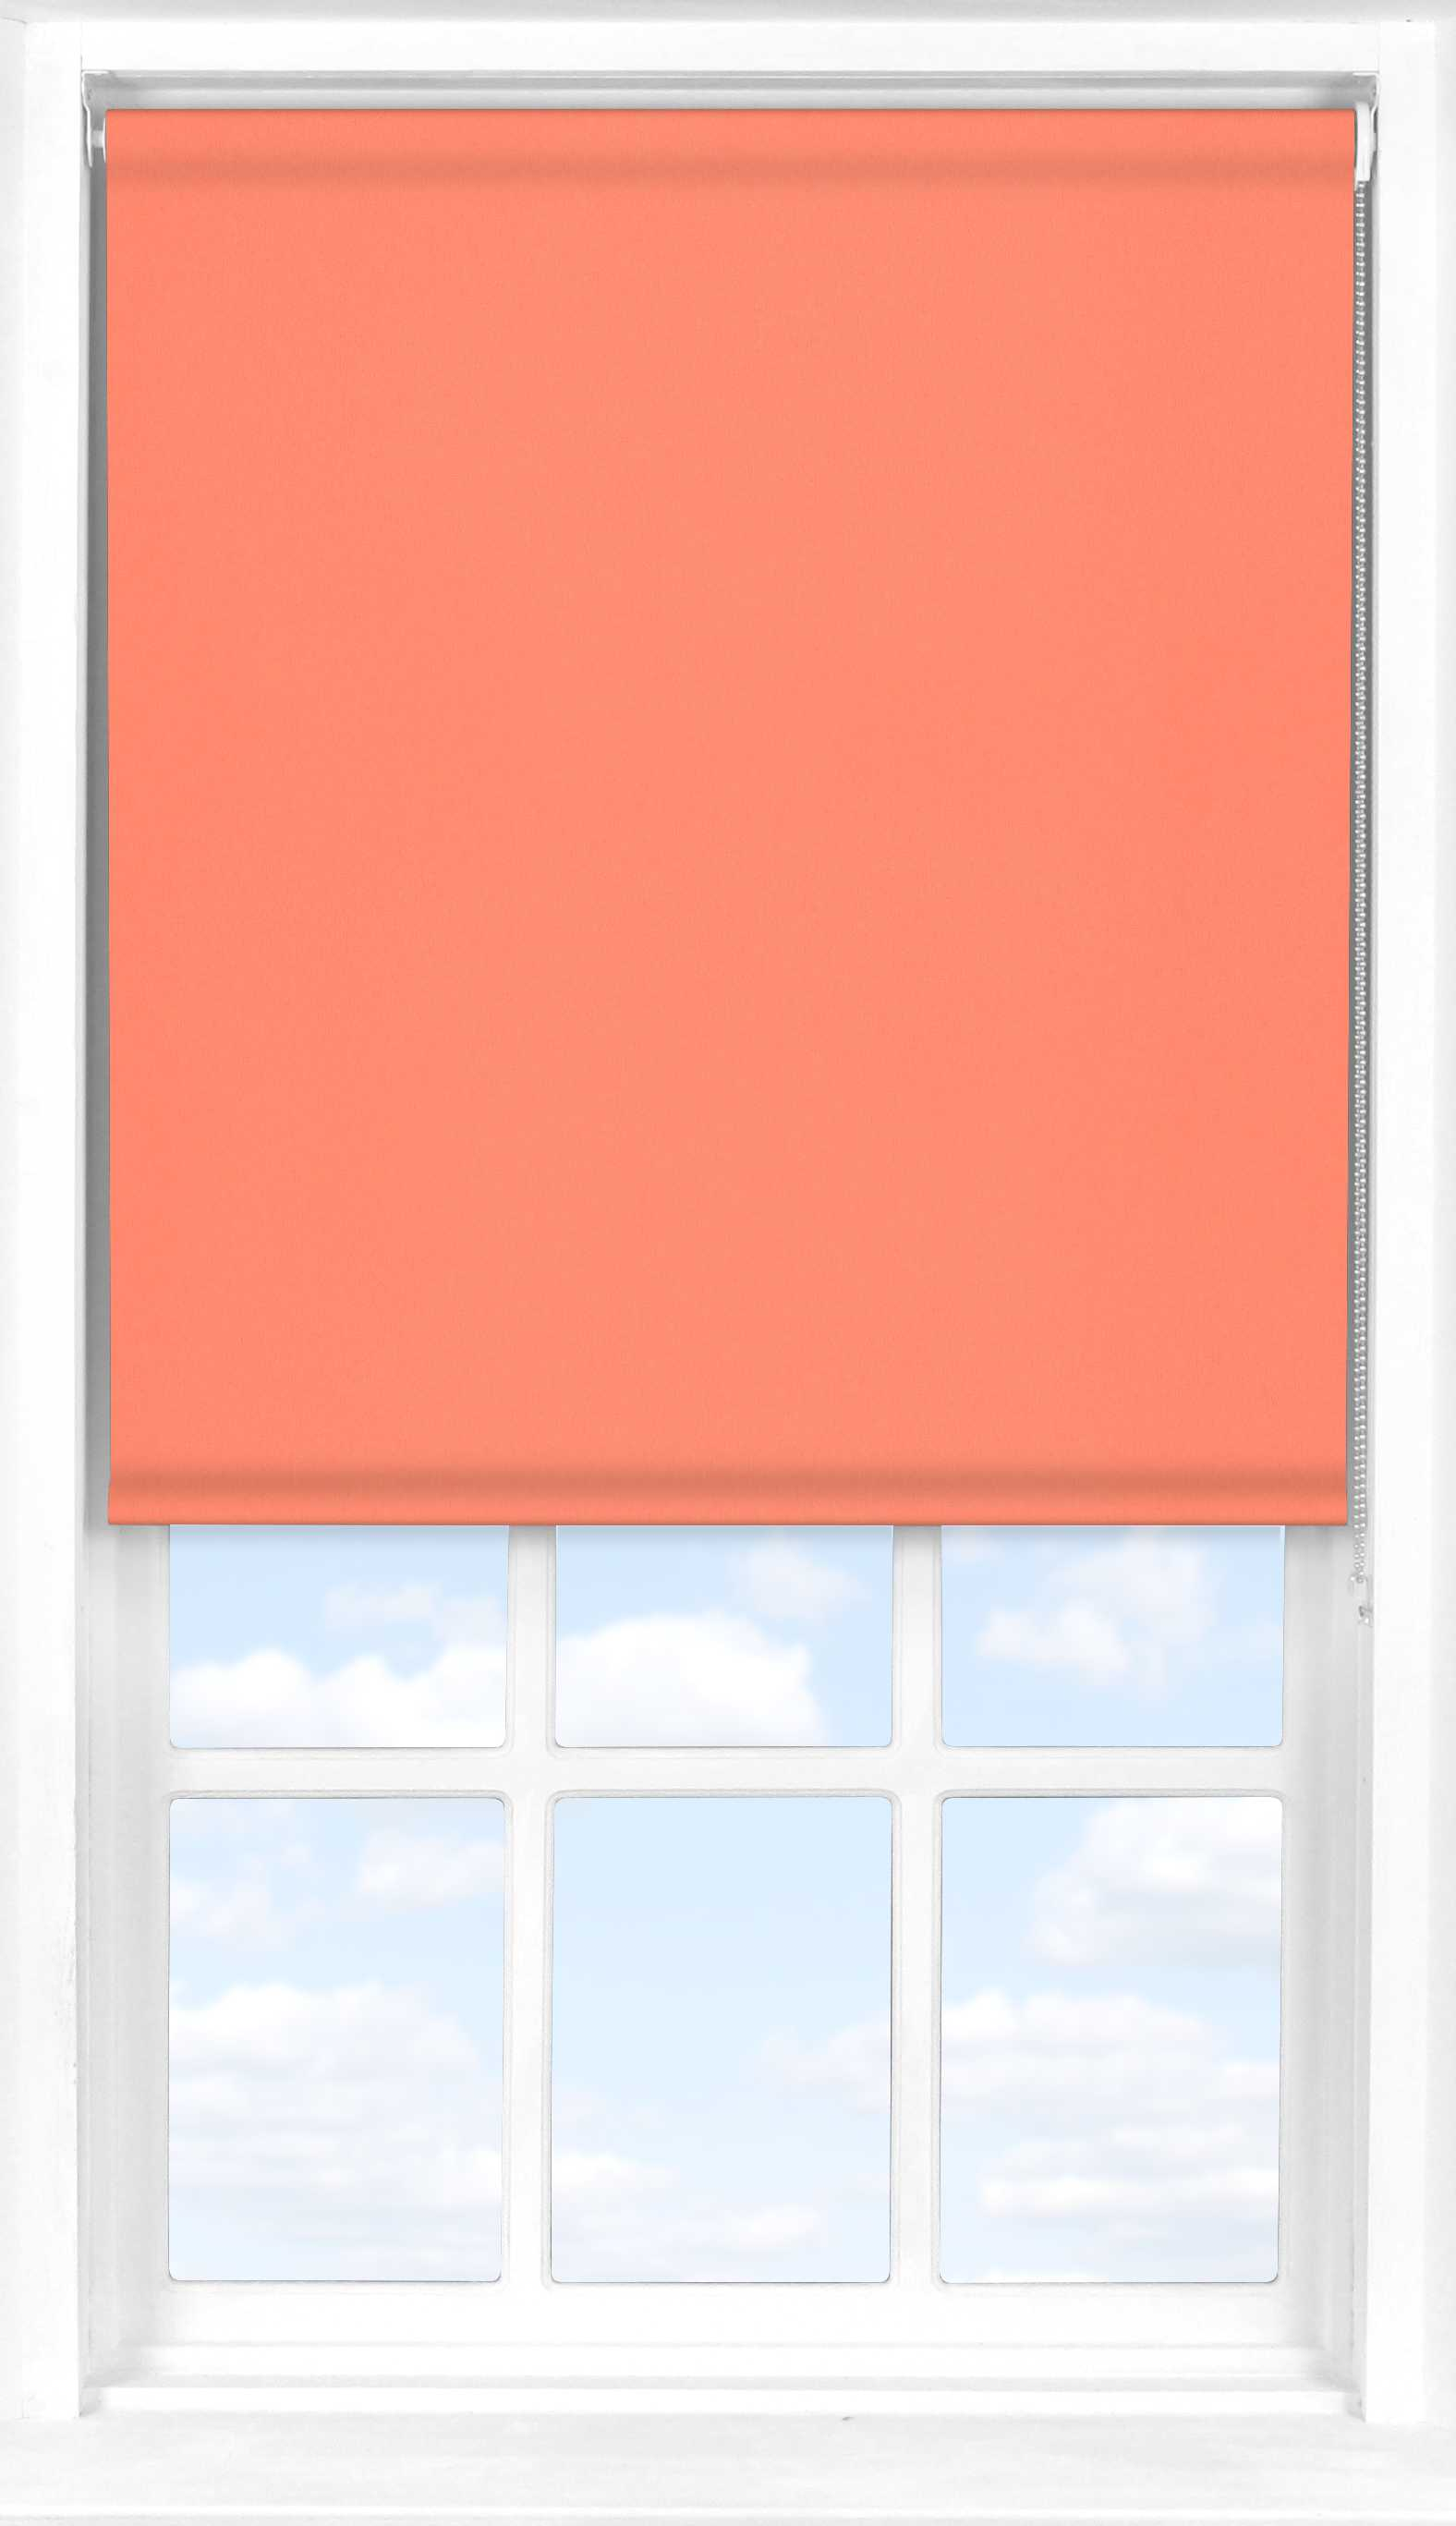 Roller Blind in Coral Sunset Translucent